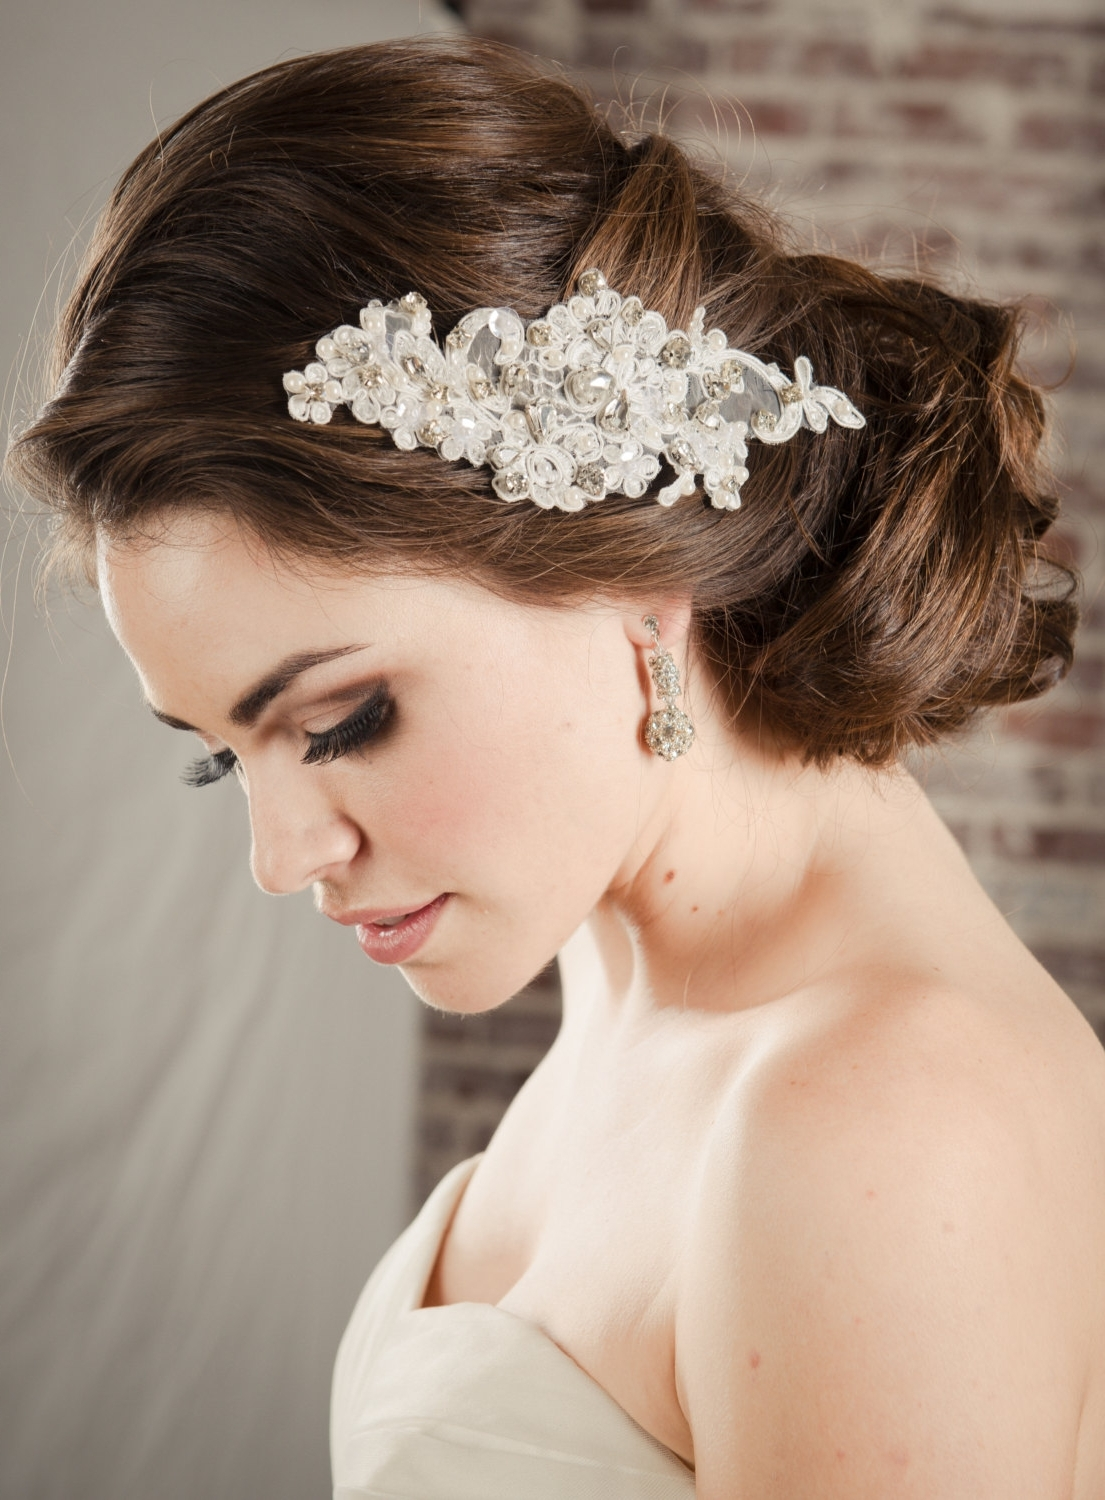 Bridal Hairstyles To Be Stylish – Bridal Hairstyles Ideas Regarding Well Known Wedding Hairstyles With Hair Piece (View 3 of 15)